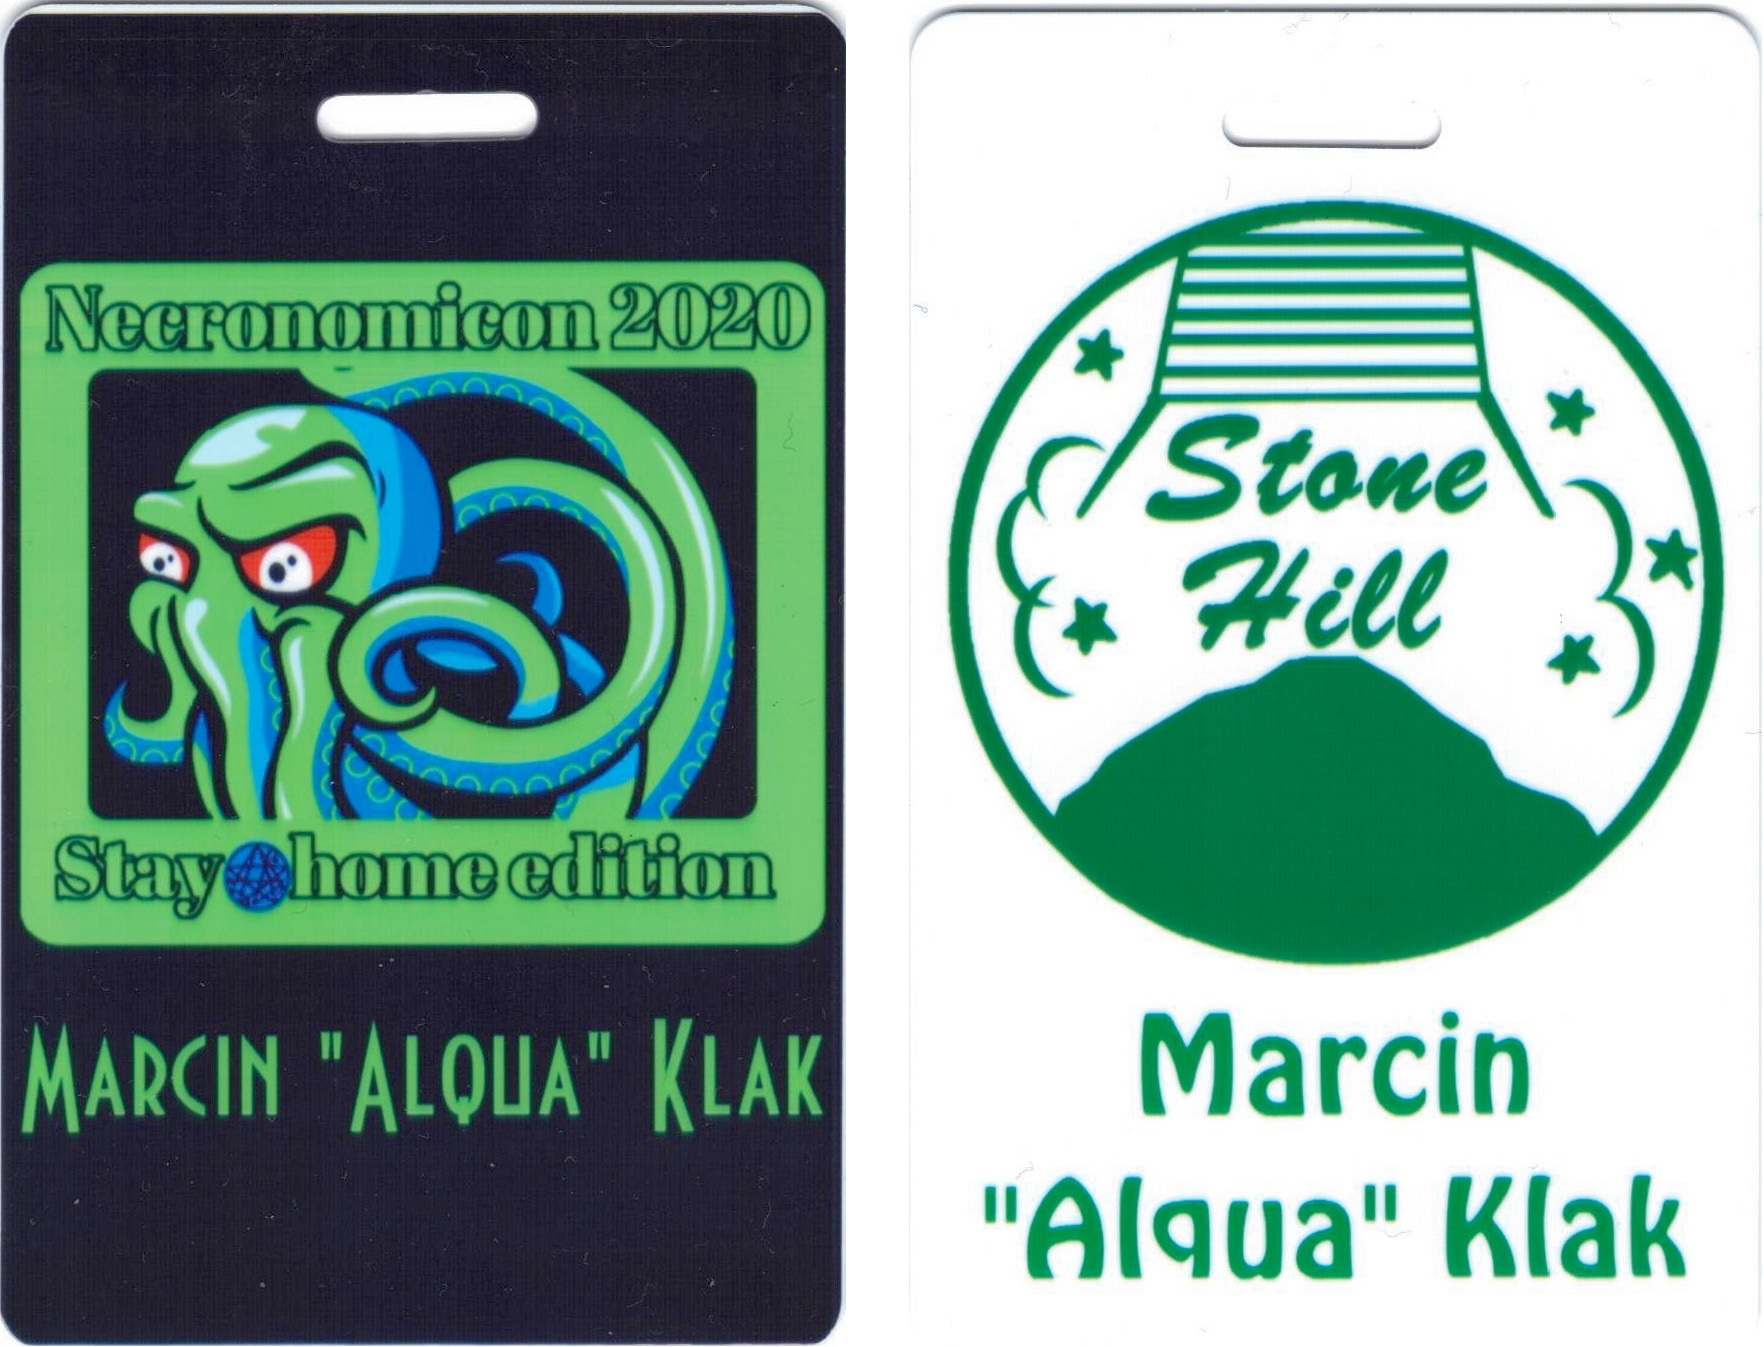 Two sides of the badge are visible. The first one shows Cthulhu on the black background. There is a frame around Cthulhu with inscription Necronomicon 2020 Stay @home edition. Second shows green graphic on white background. The graphic is a circle with a hill and lower part of starting rocket. There is inscription 'Stone Hill'. Bottom part of each side of the badge has green inscription 'Marcin 'Alqua' Klak'.